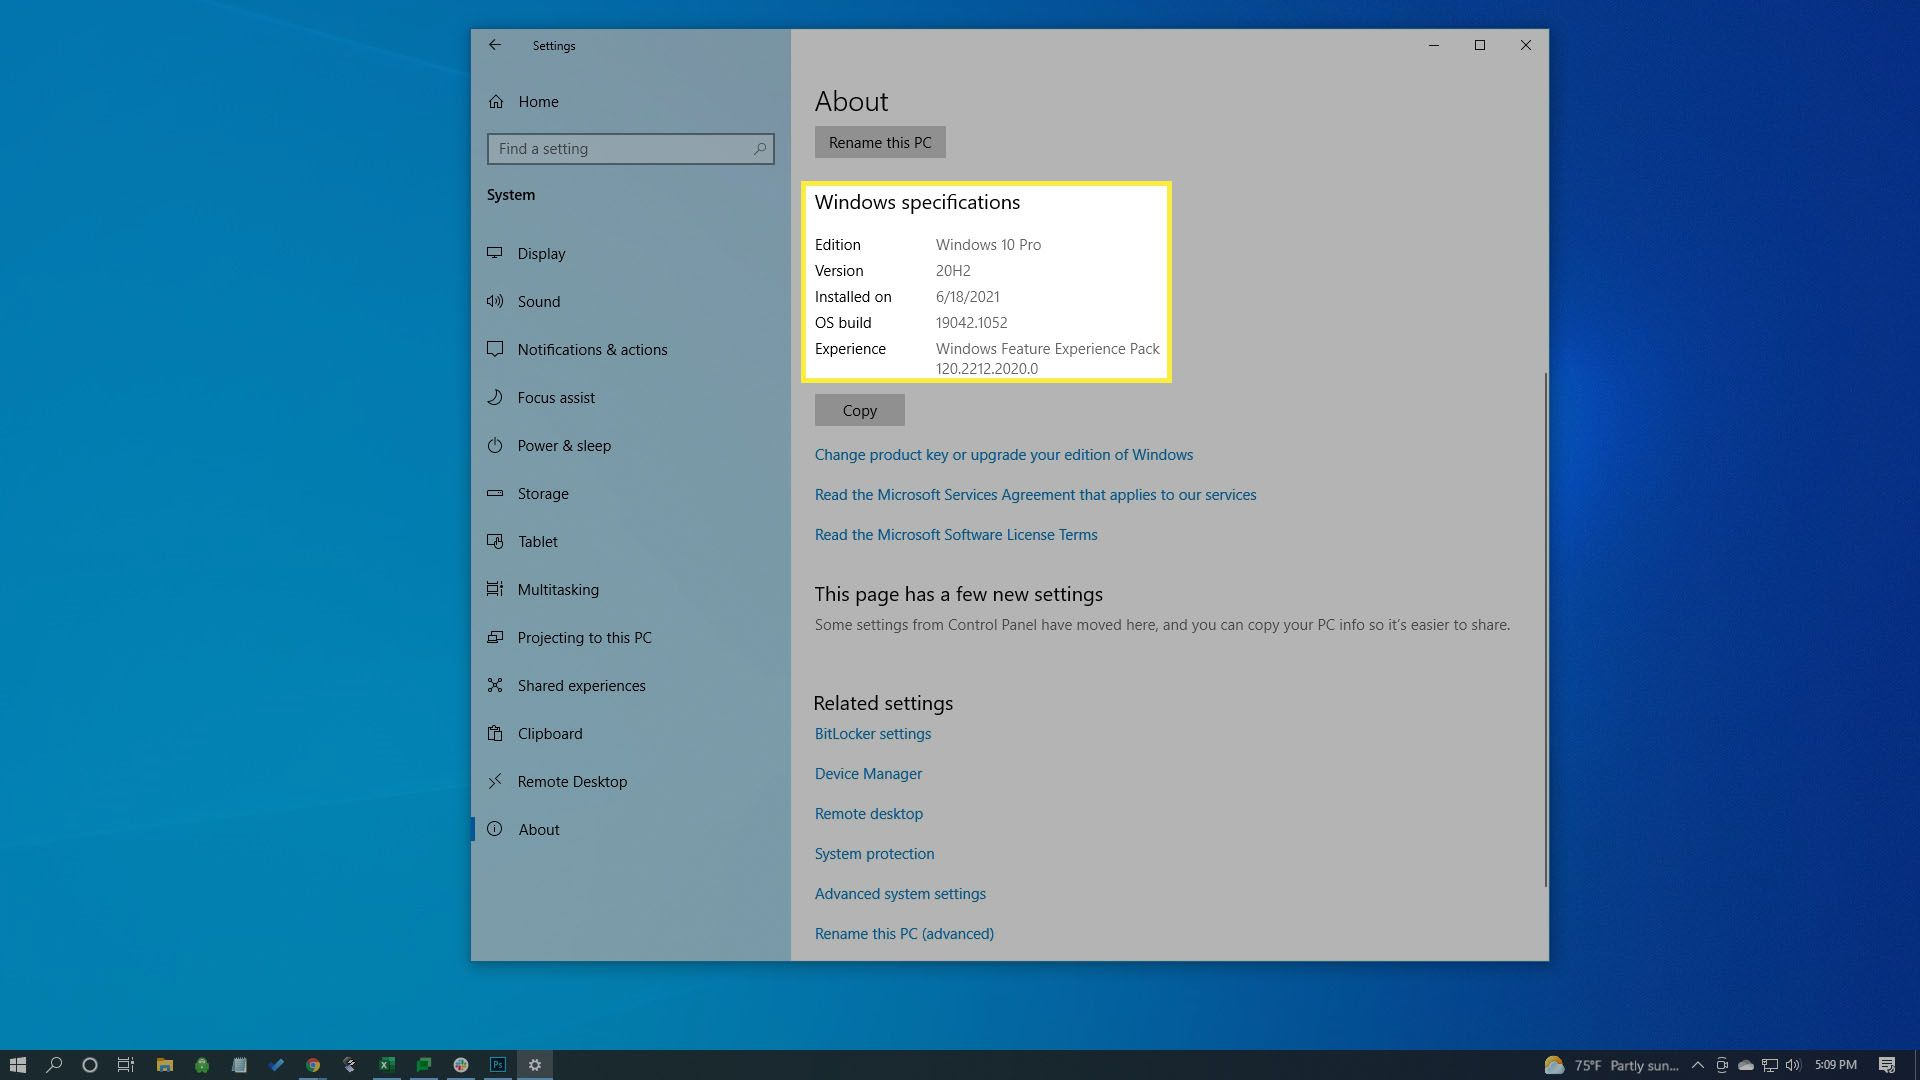 Windows version listed in System settings.